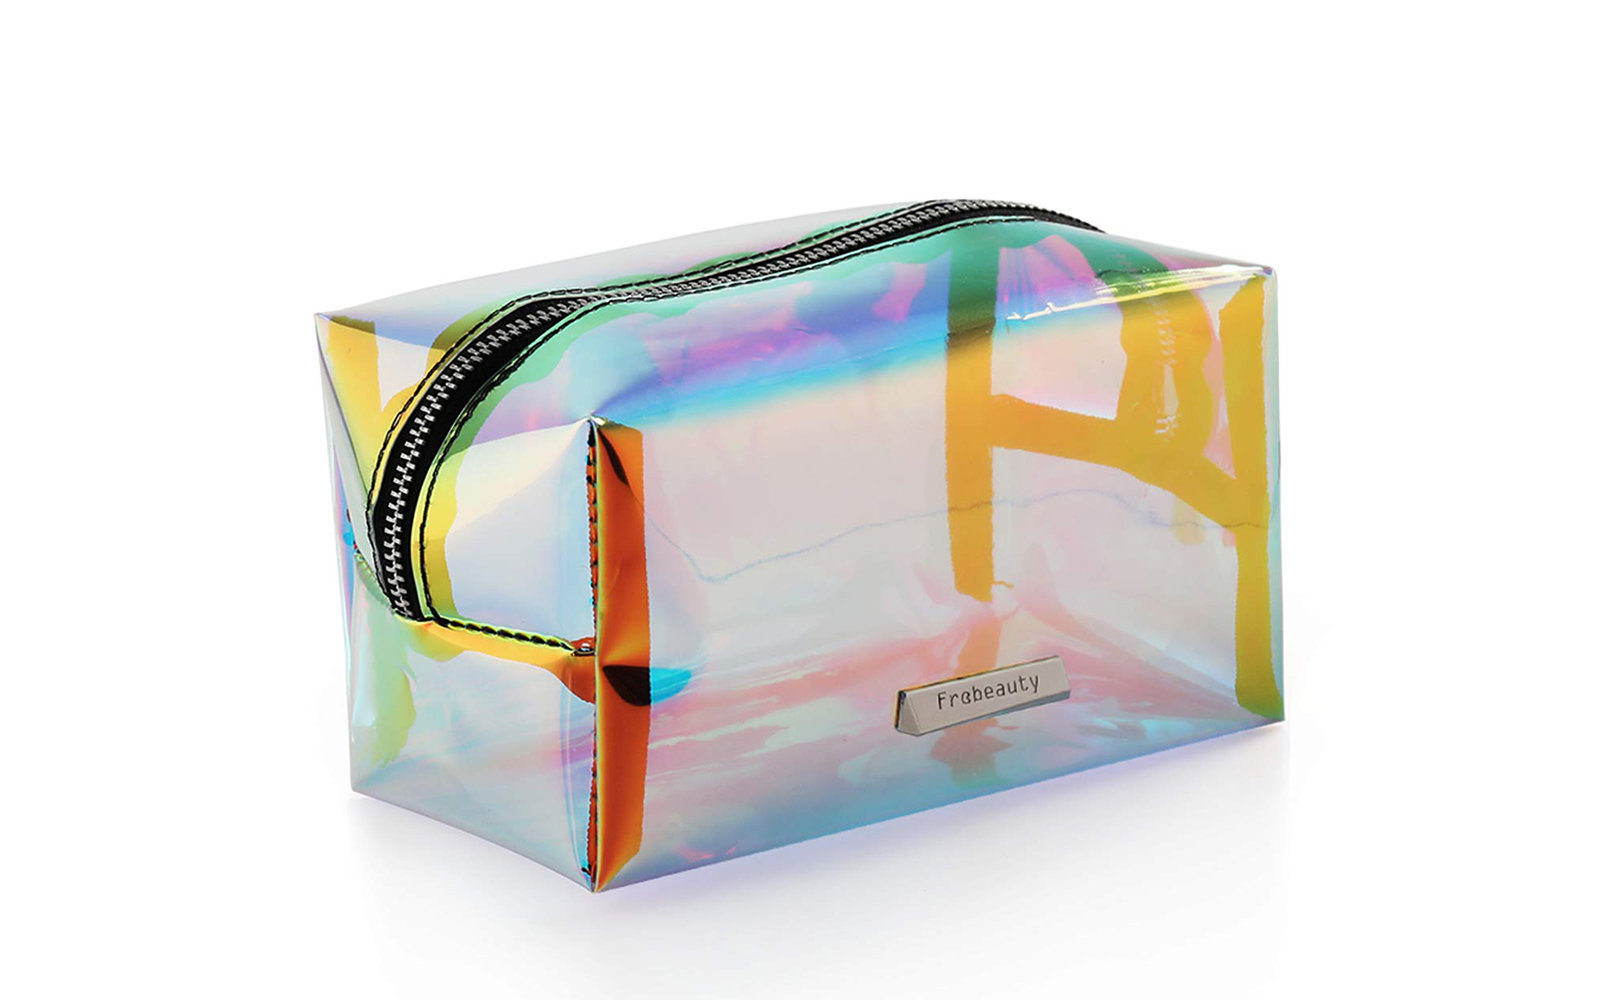 Frebeauty Holographic Iridescent Pouch